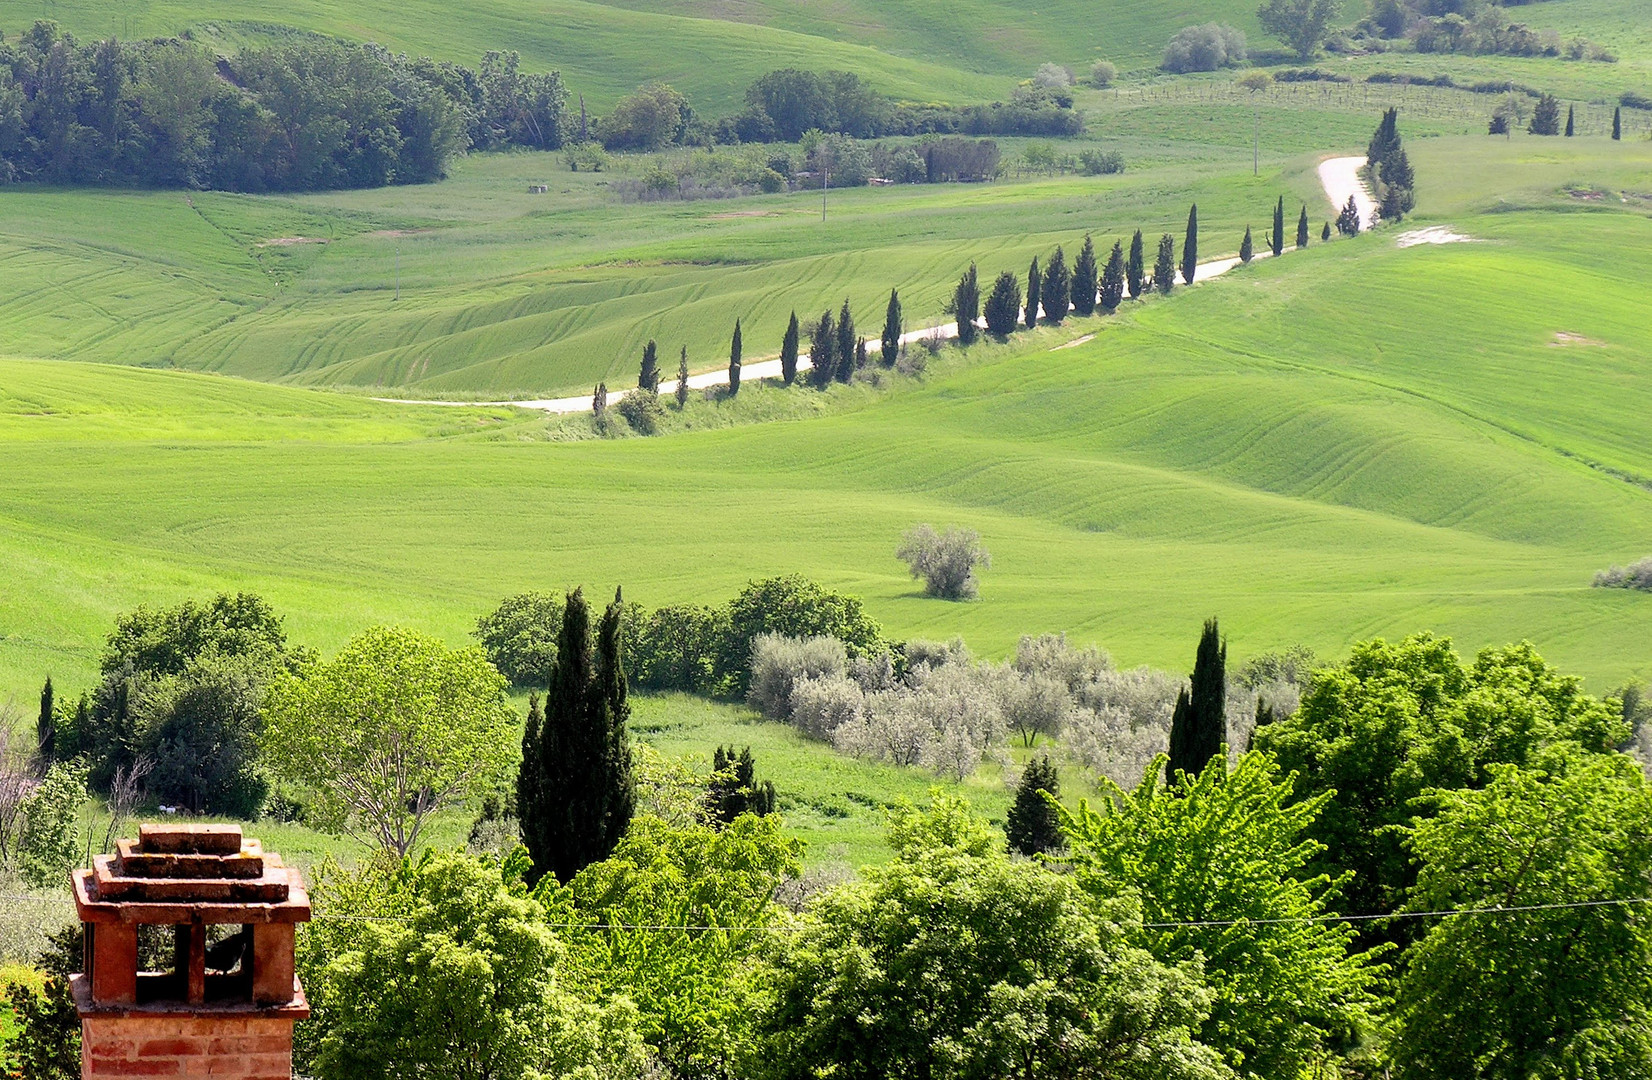 053 Val d'Orcia.JPG